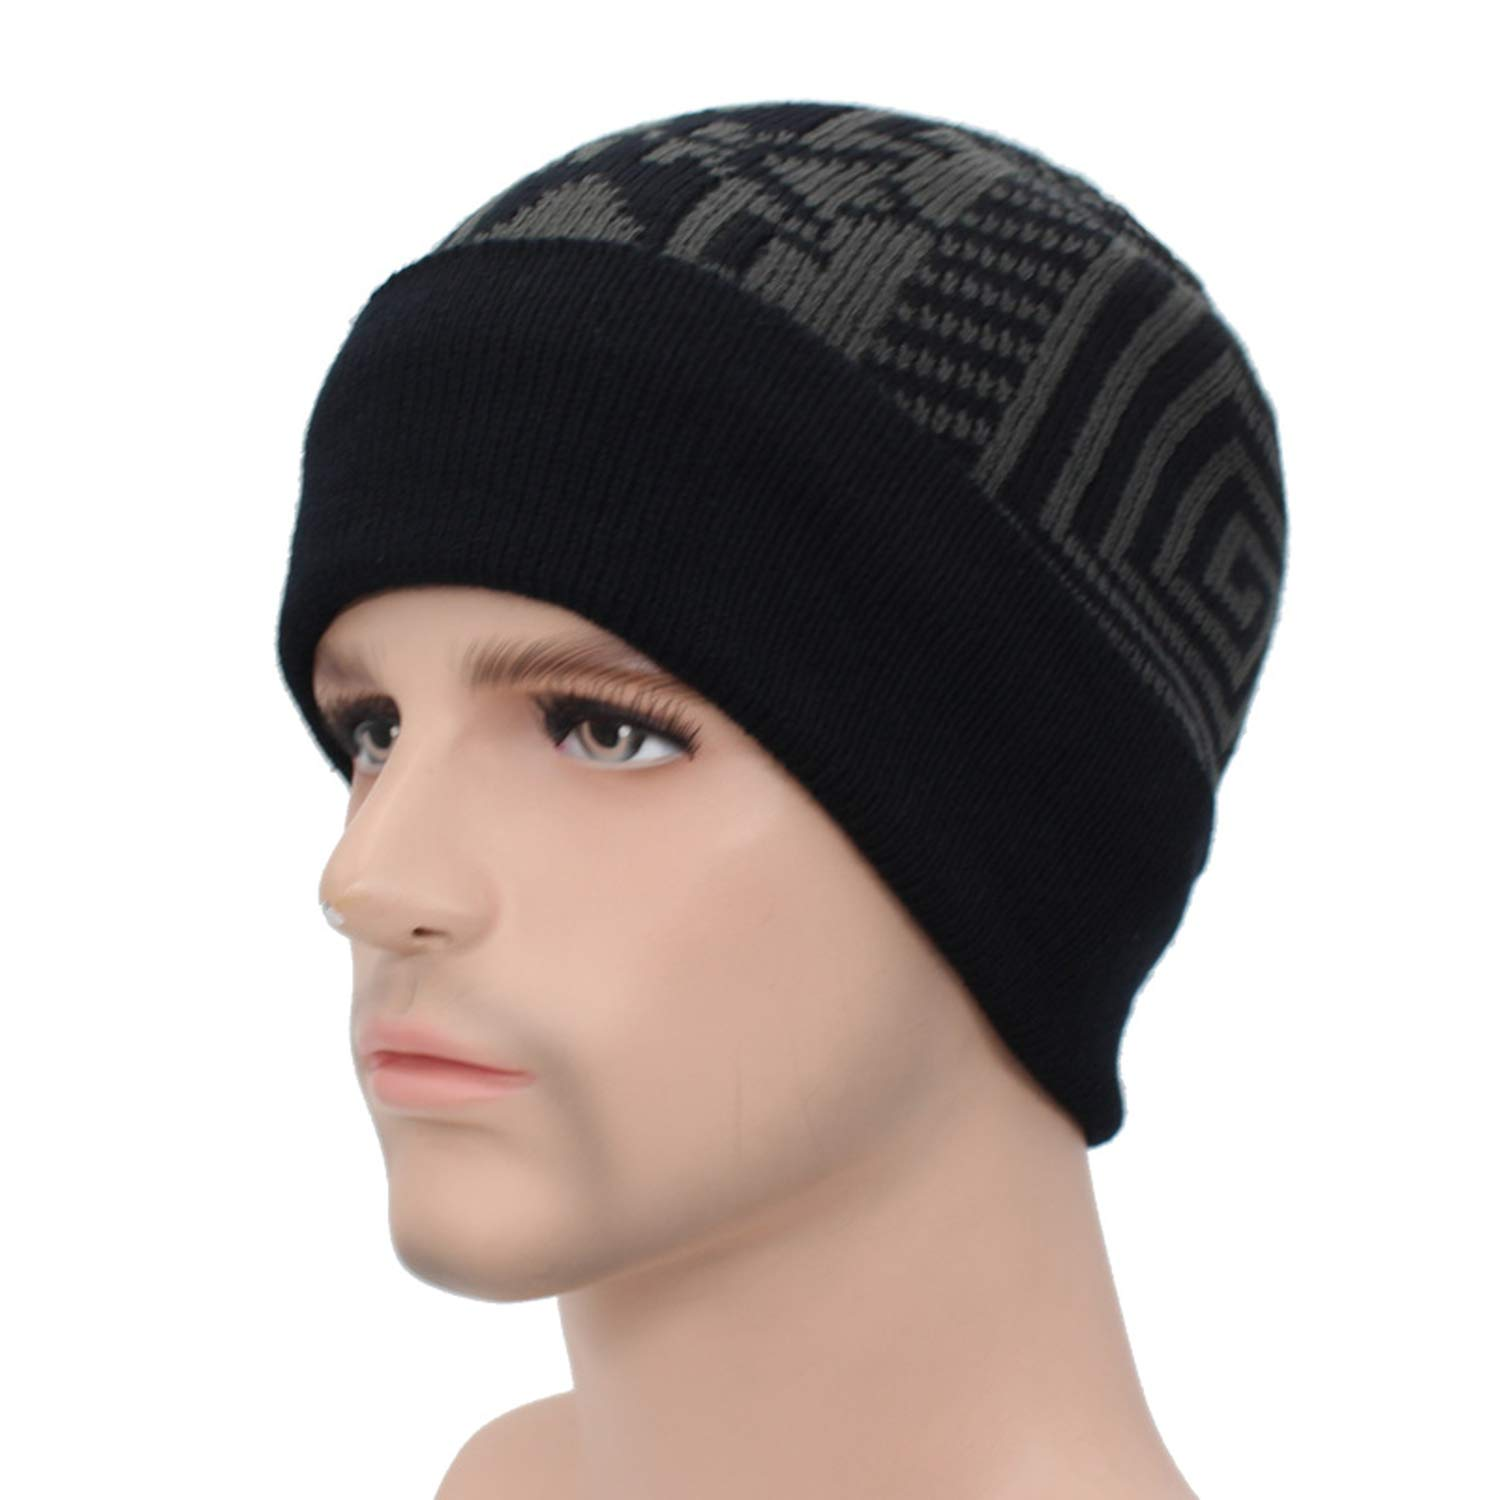 9211229c3 Skullies Beanies Winter Knitted Hat Beanie Scarf Men Winter Hats for ...